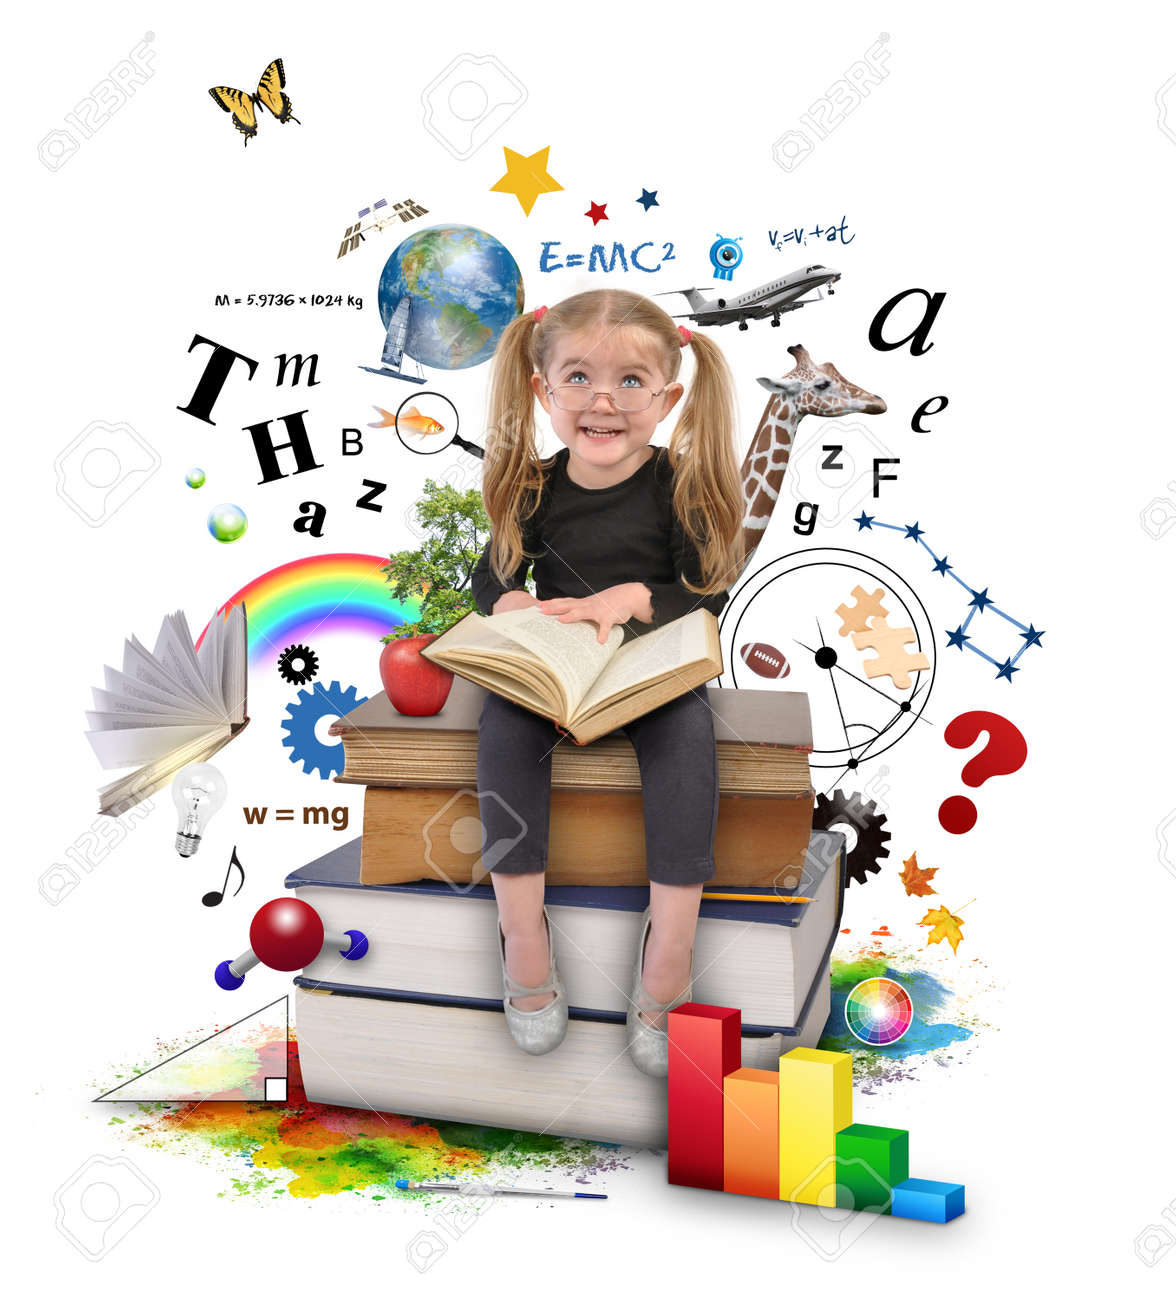 A young girl with glasses is reading a book with school icons such as math formulas, animals and nature objects around her for an education concept on white. - 28116289